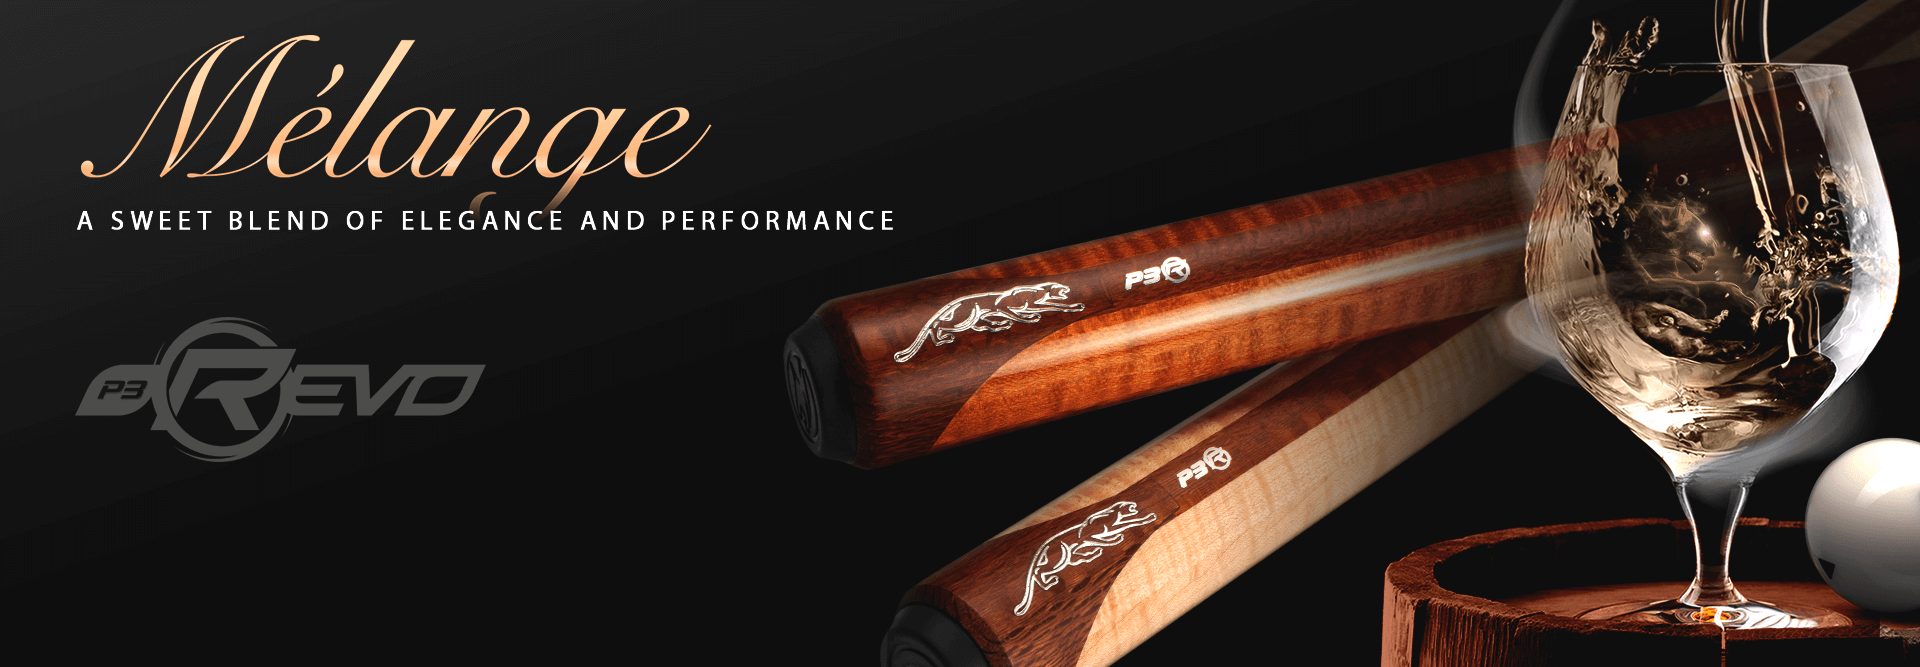 Predator P3 Melange Billiard Cues